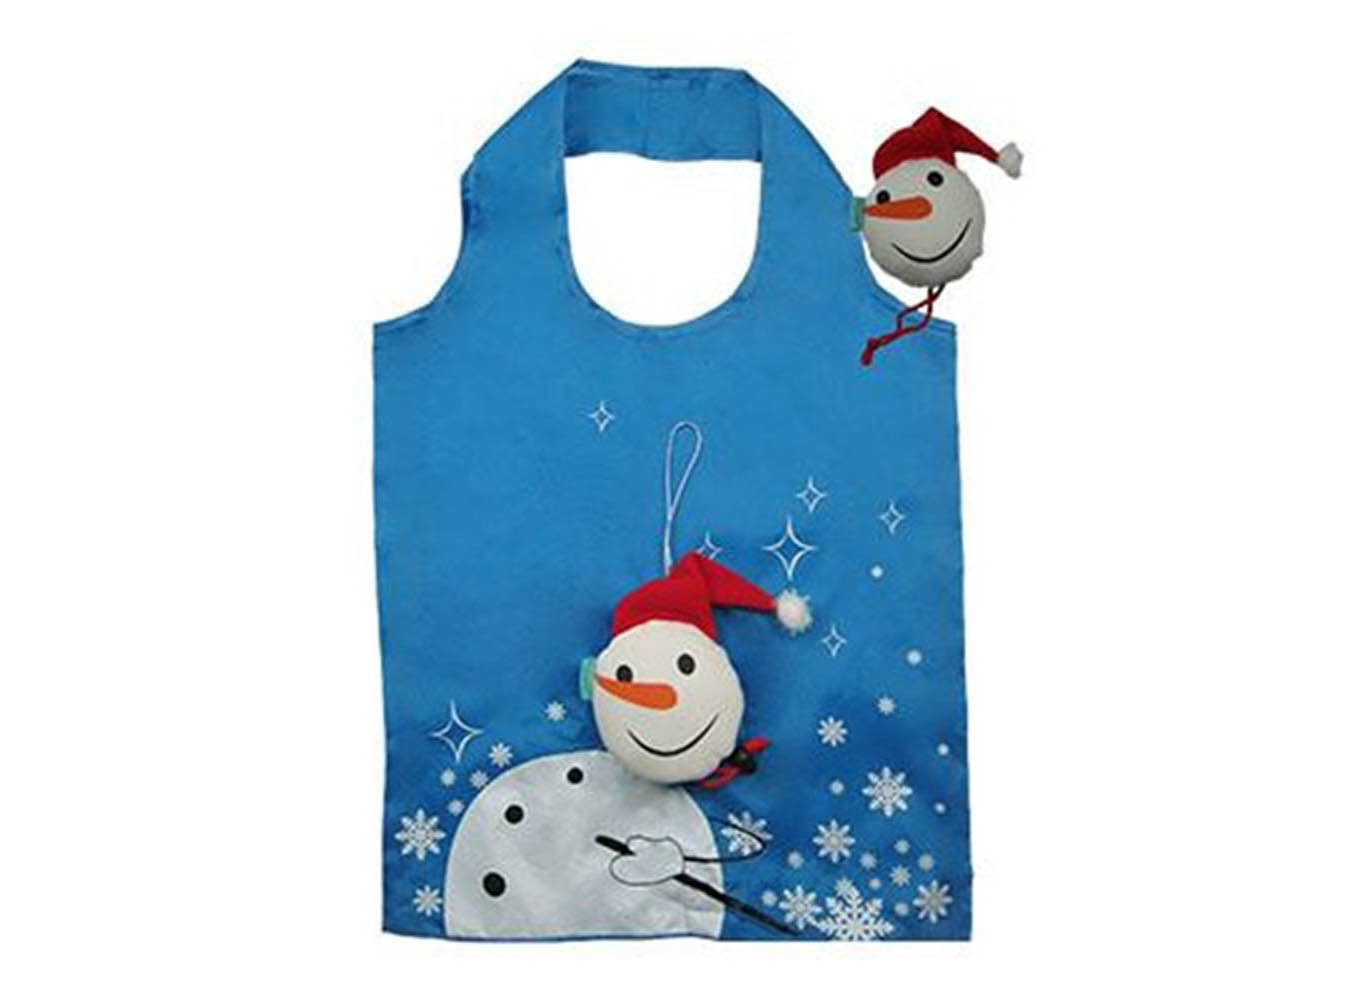 Custom Printed Recycled Plastic RPET Bag w/ Snowman Shaped Pouch